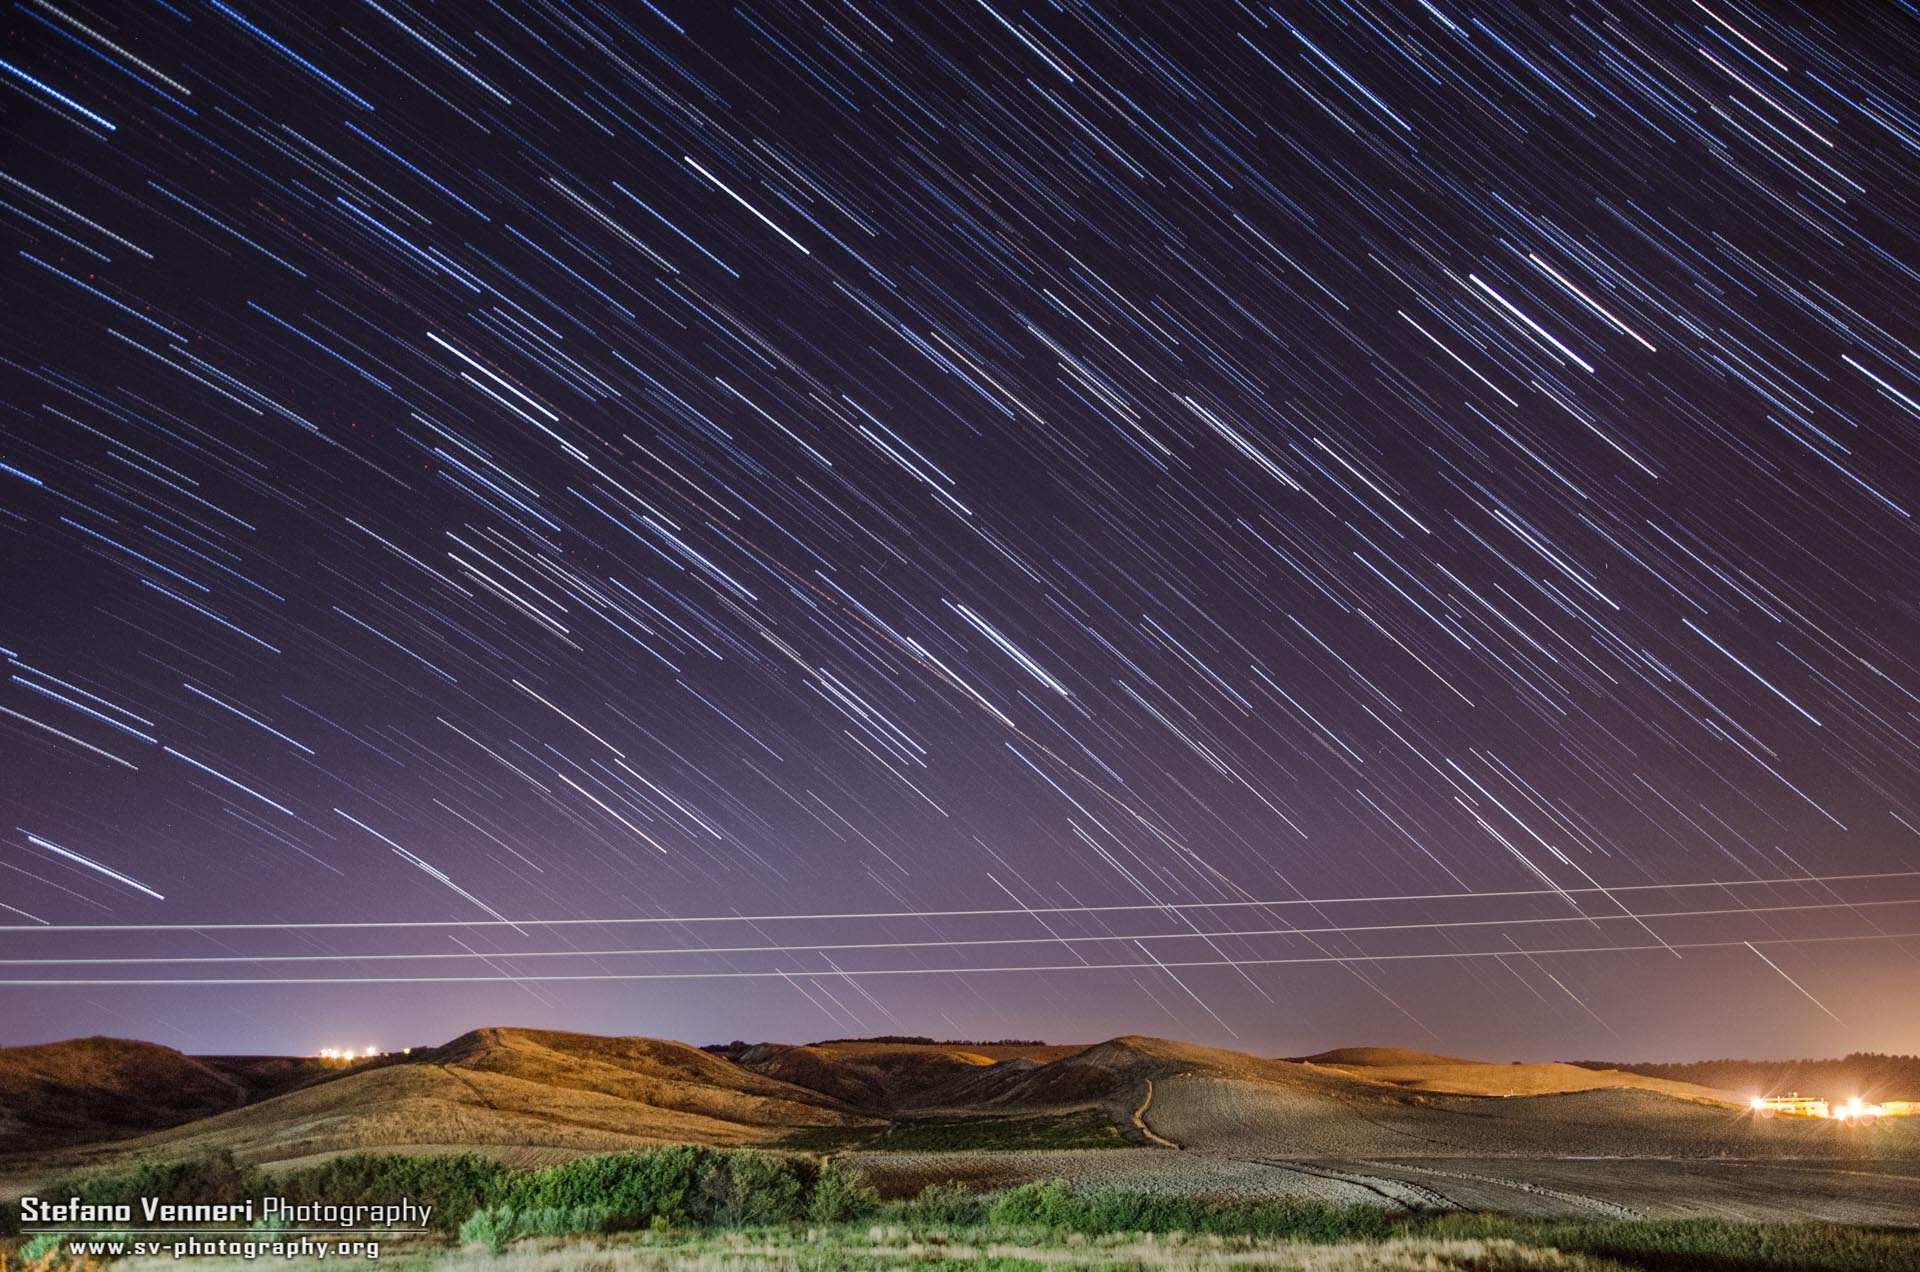 First startrail